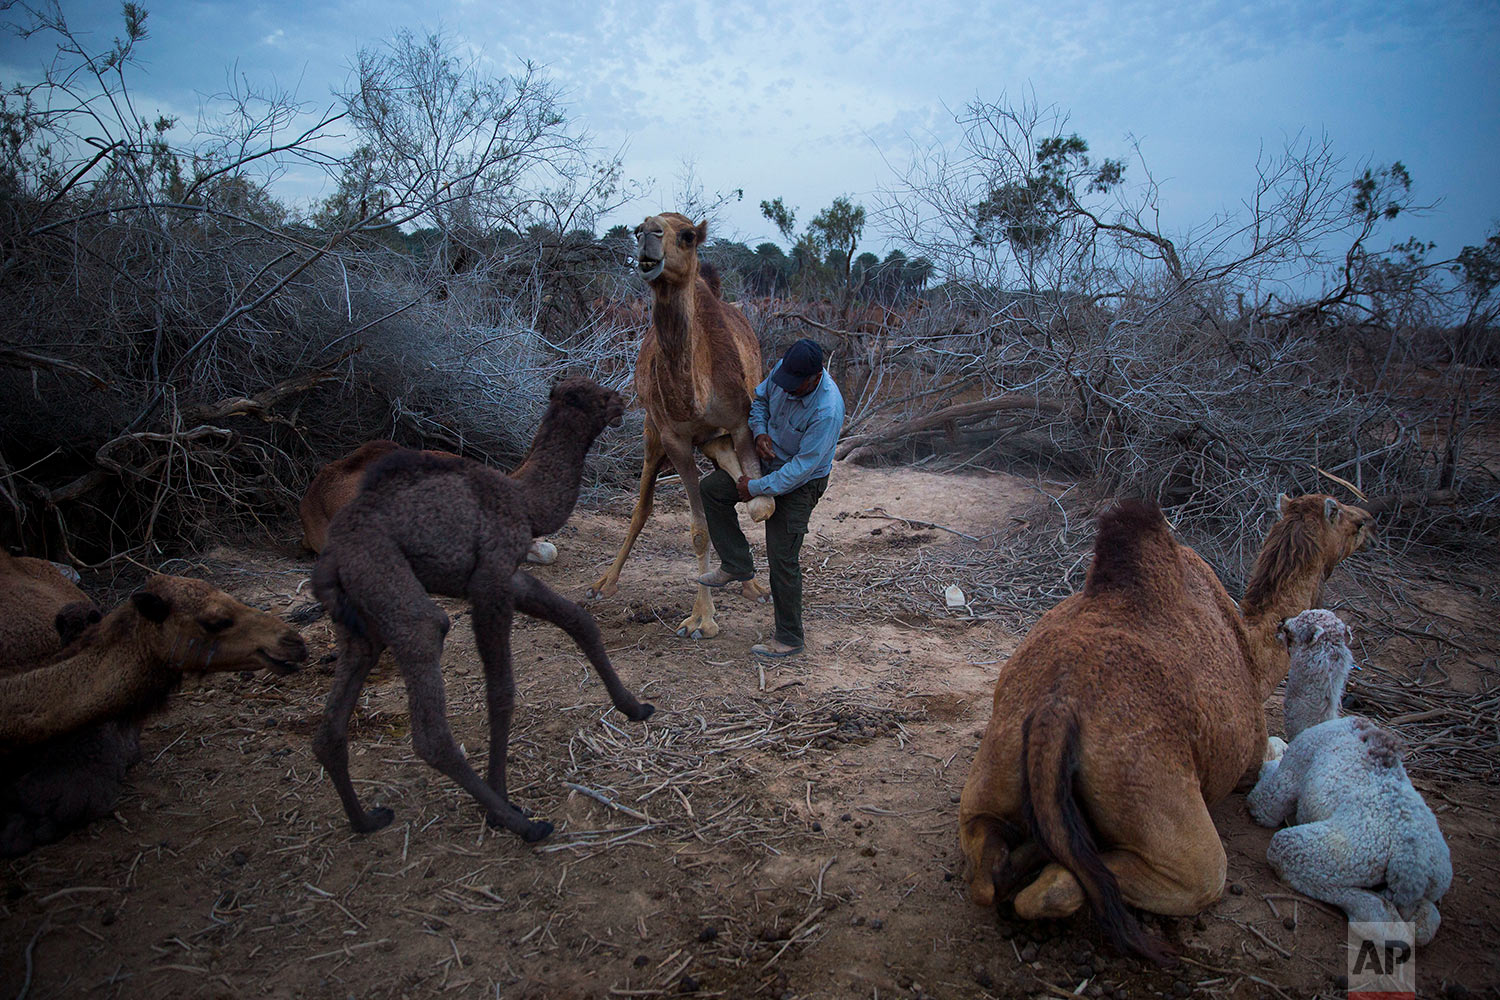 In this Friday, Feb. 9, 2018 photo, Beduin camels herder Ali Zarlul ties the leg of camel to prevent her from walk away at the night camp in the territory of Israeli Kibbutz Kalya, near the Dead Sea in the West Bank. (AP Photo/Oded Balilty)